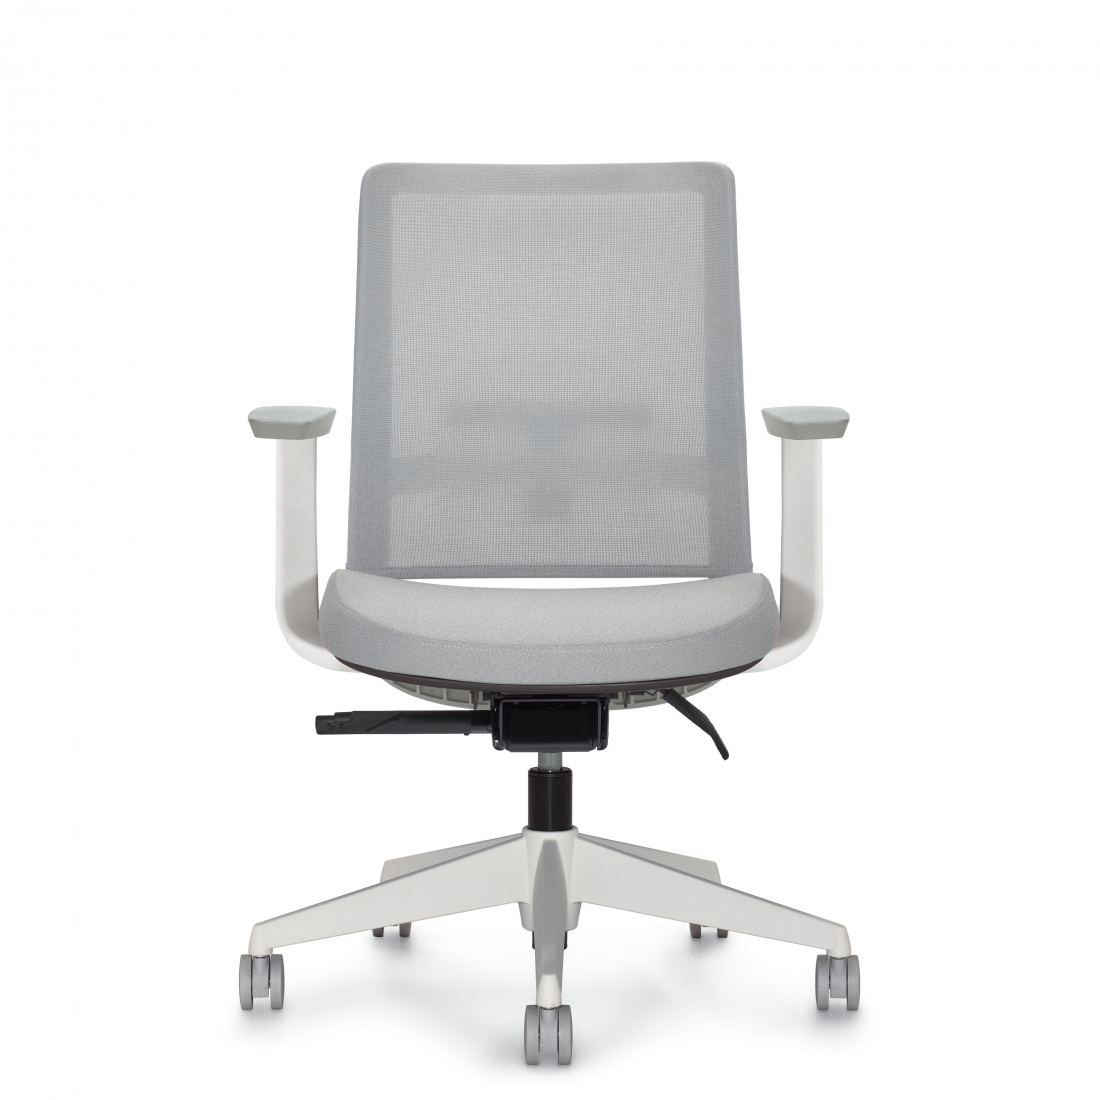 global factor series mid back mesh chair model 5541